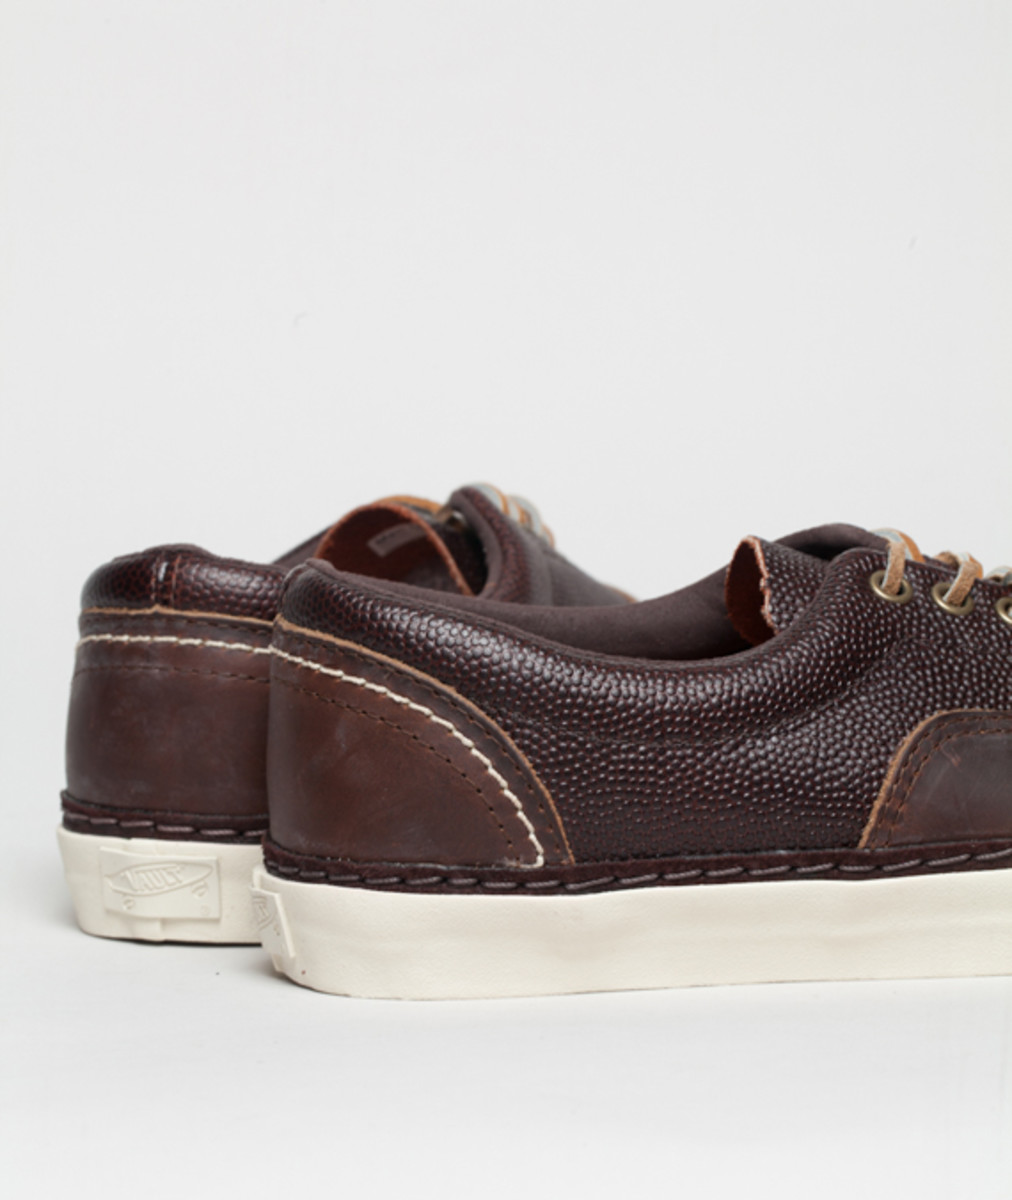 horween-leather-vans-era-hw-lx-08